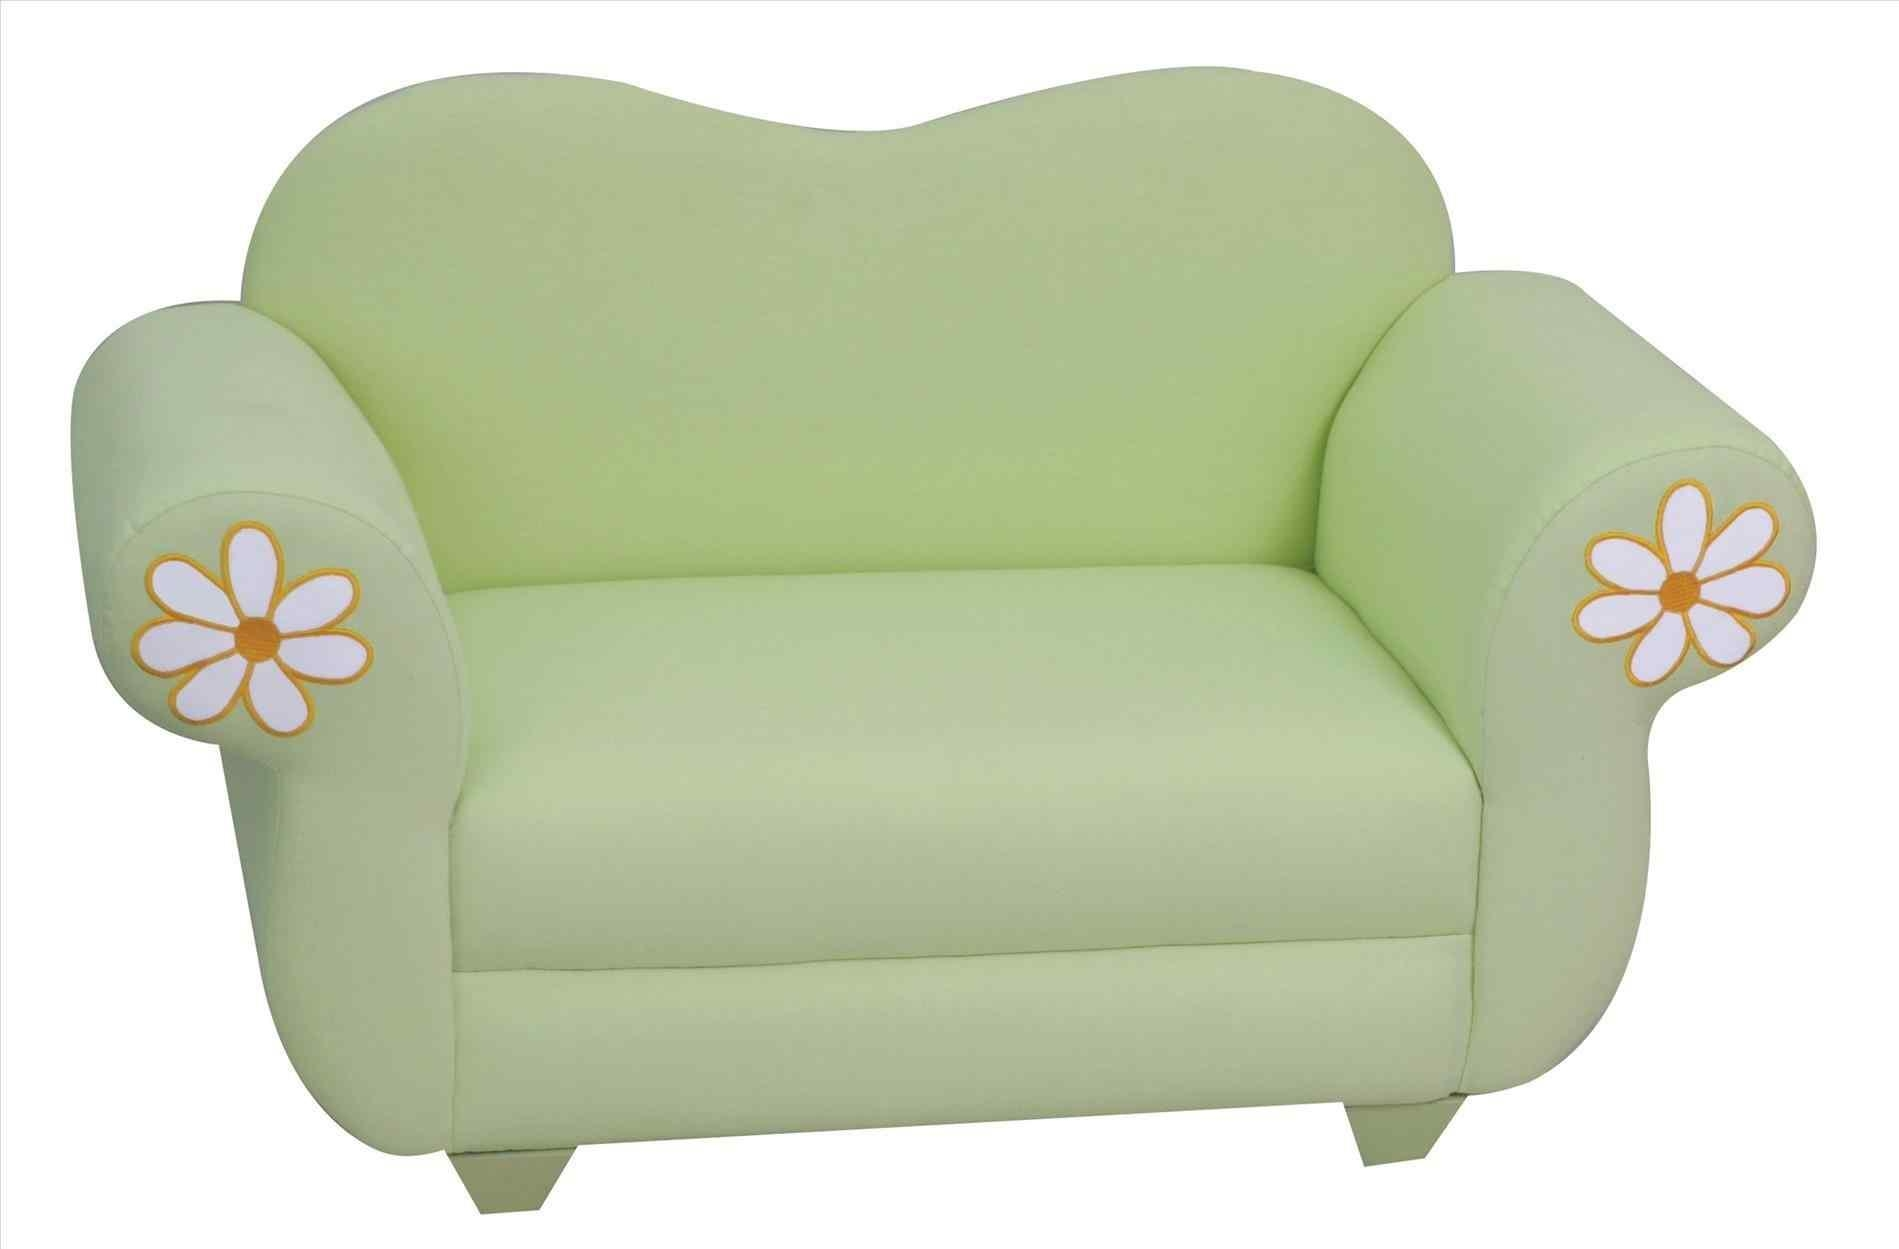 Cheap Childrens Sofa Beds | Chair And Sofa With Childrens Sofa Bed Chairs (Image 1 of 20)